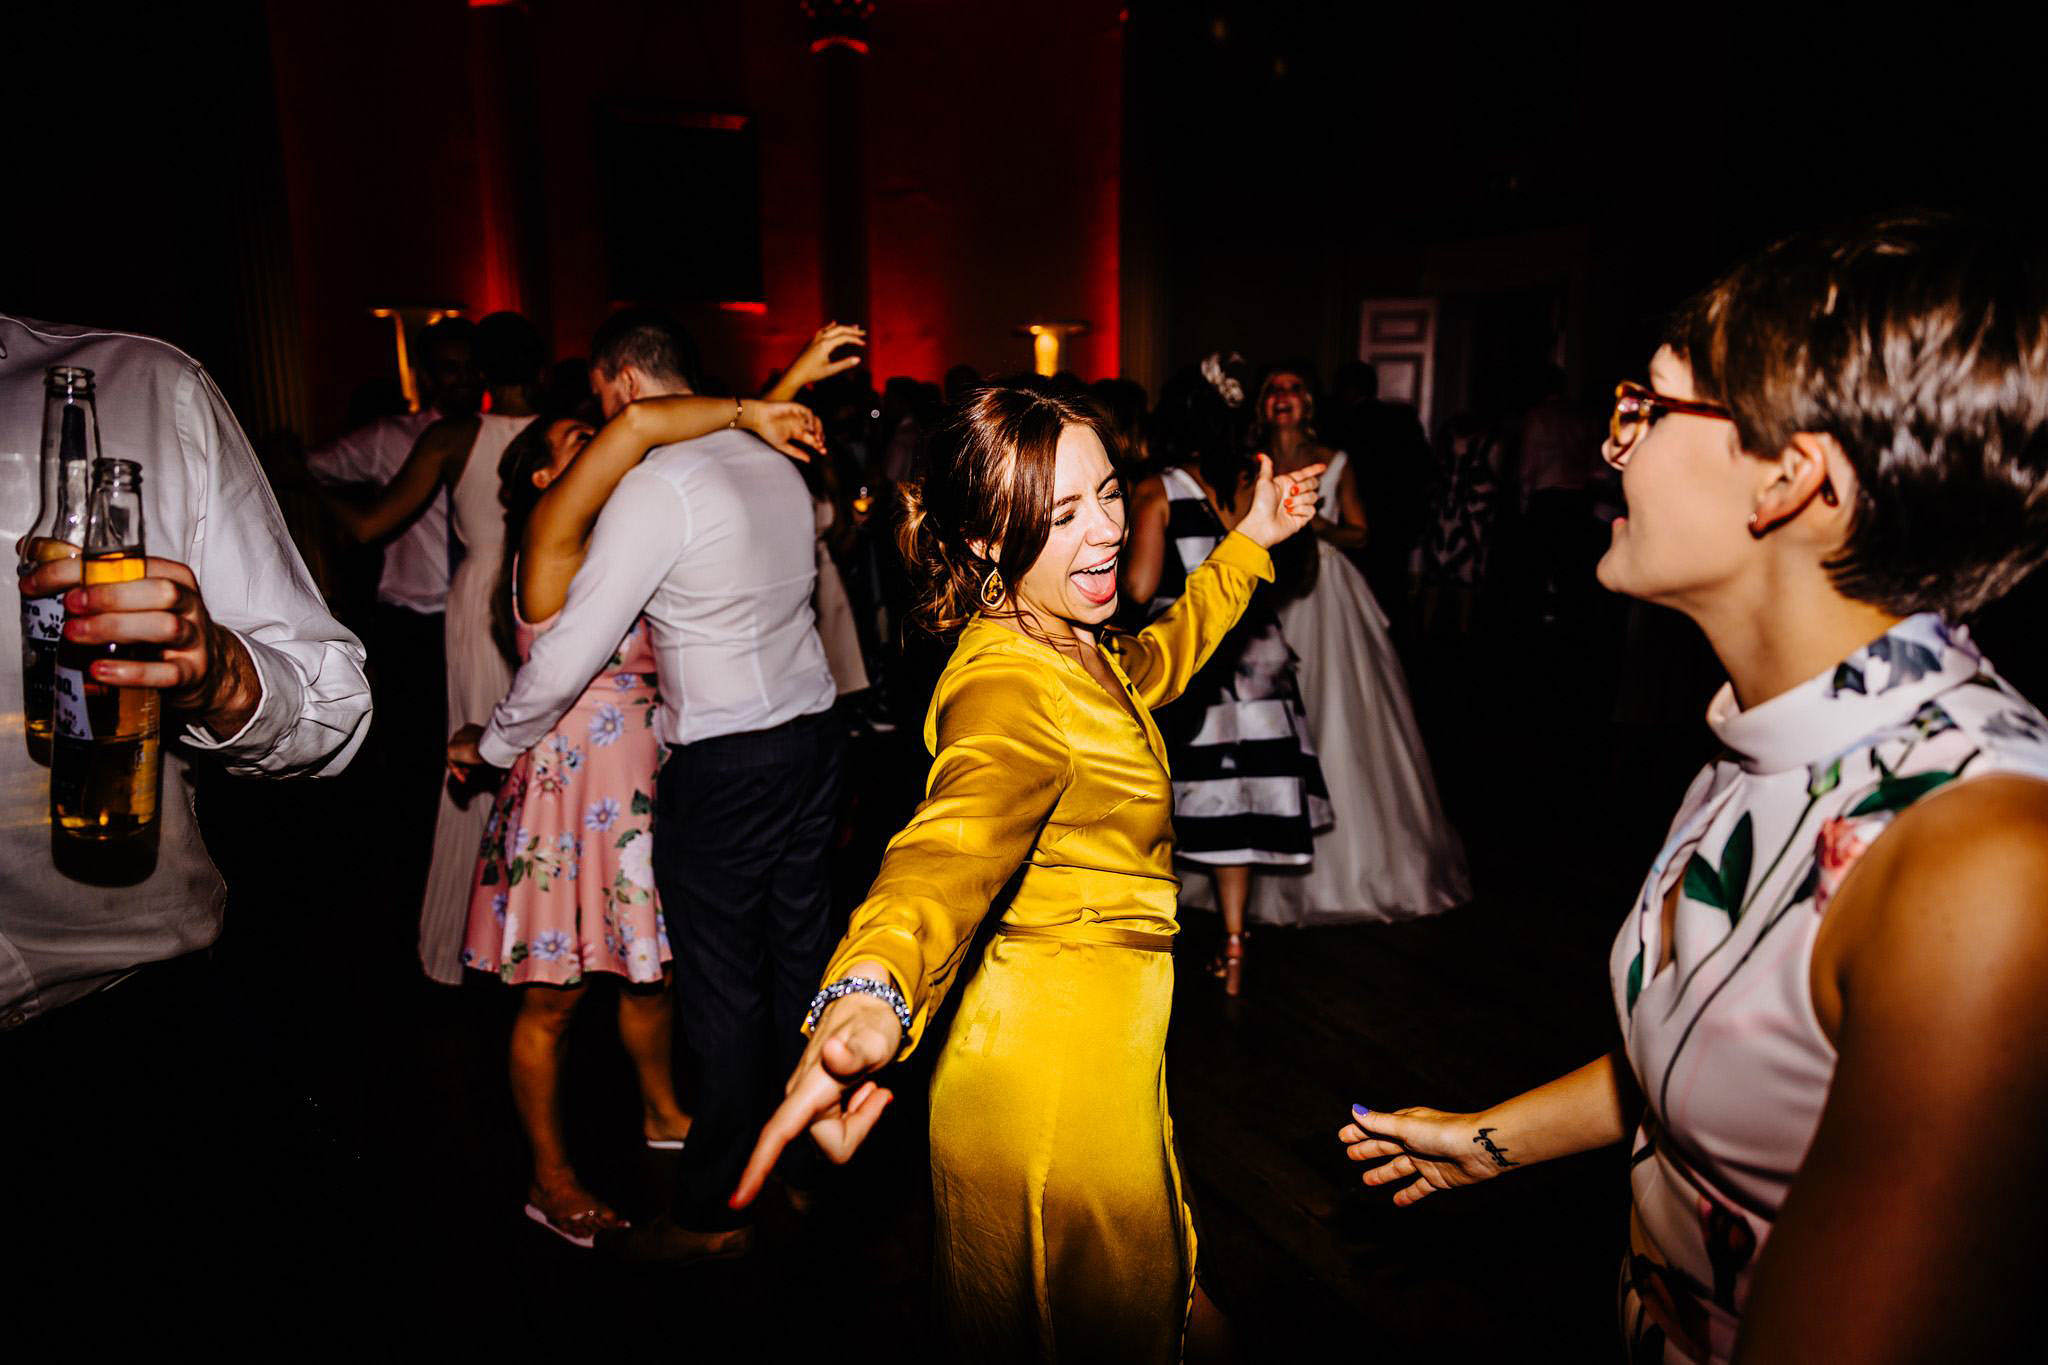 dancing fun at a wedding